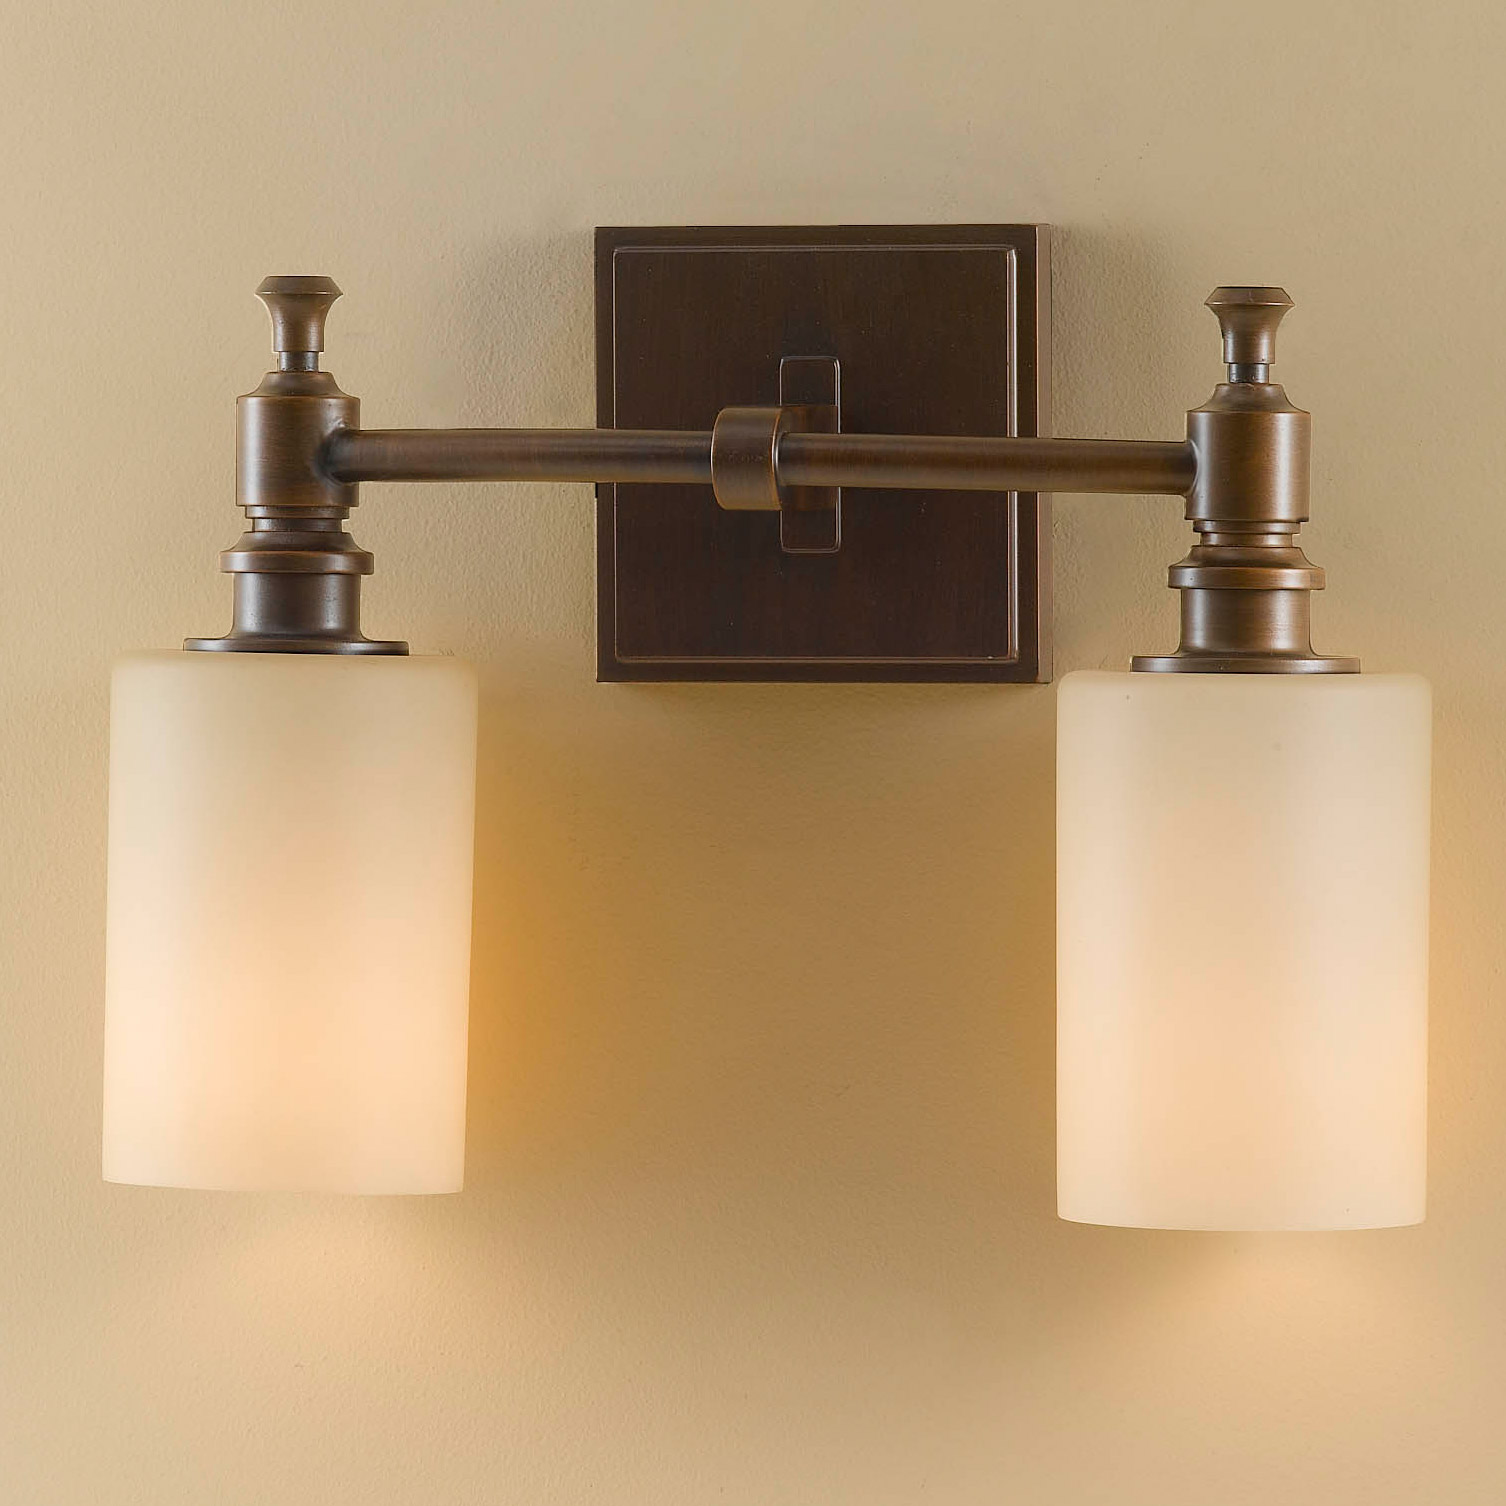 murray feiss vs16102 htbz sullivan ada compliant vanity light